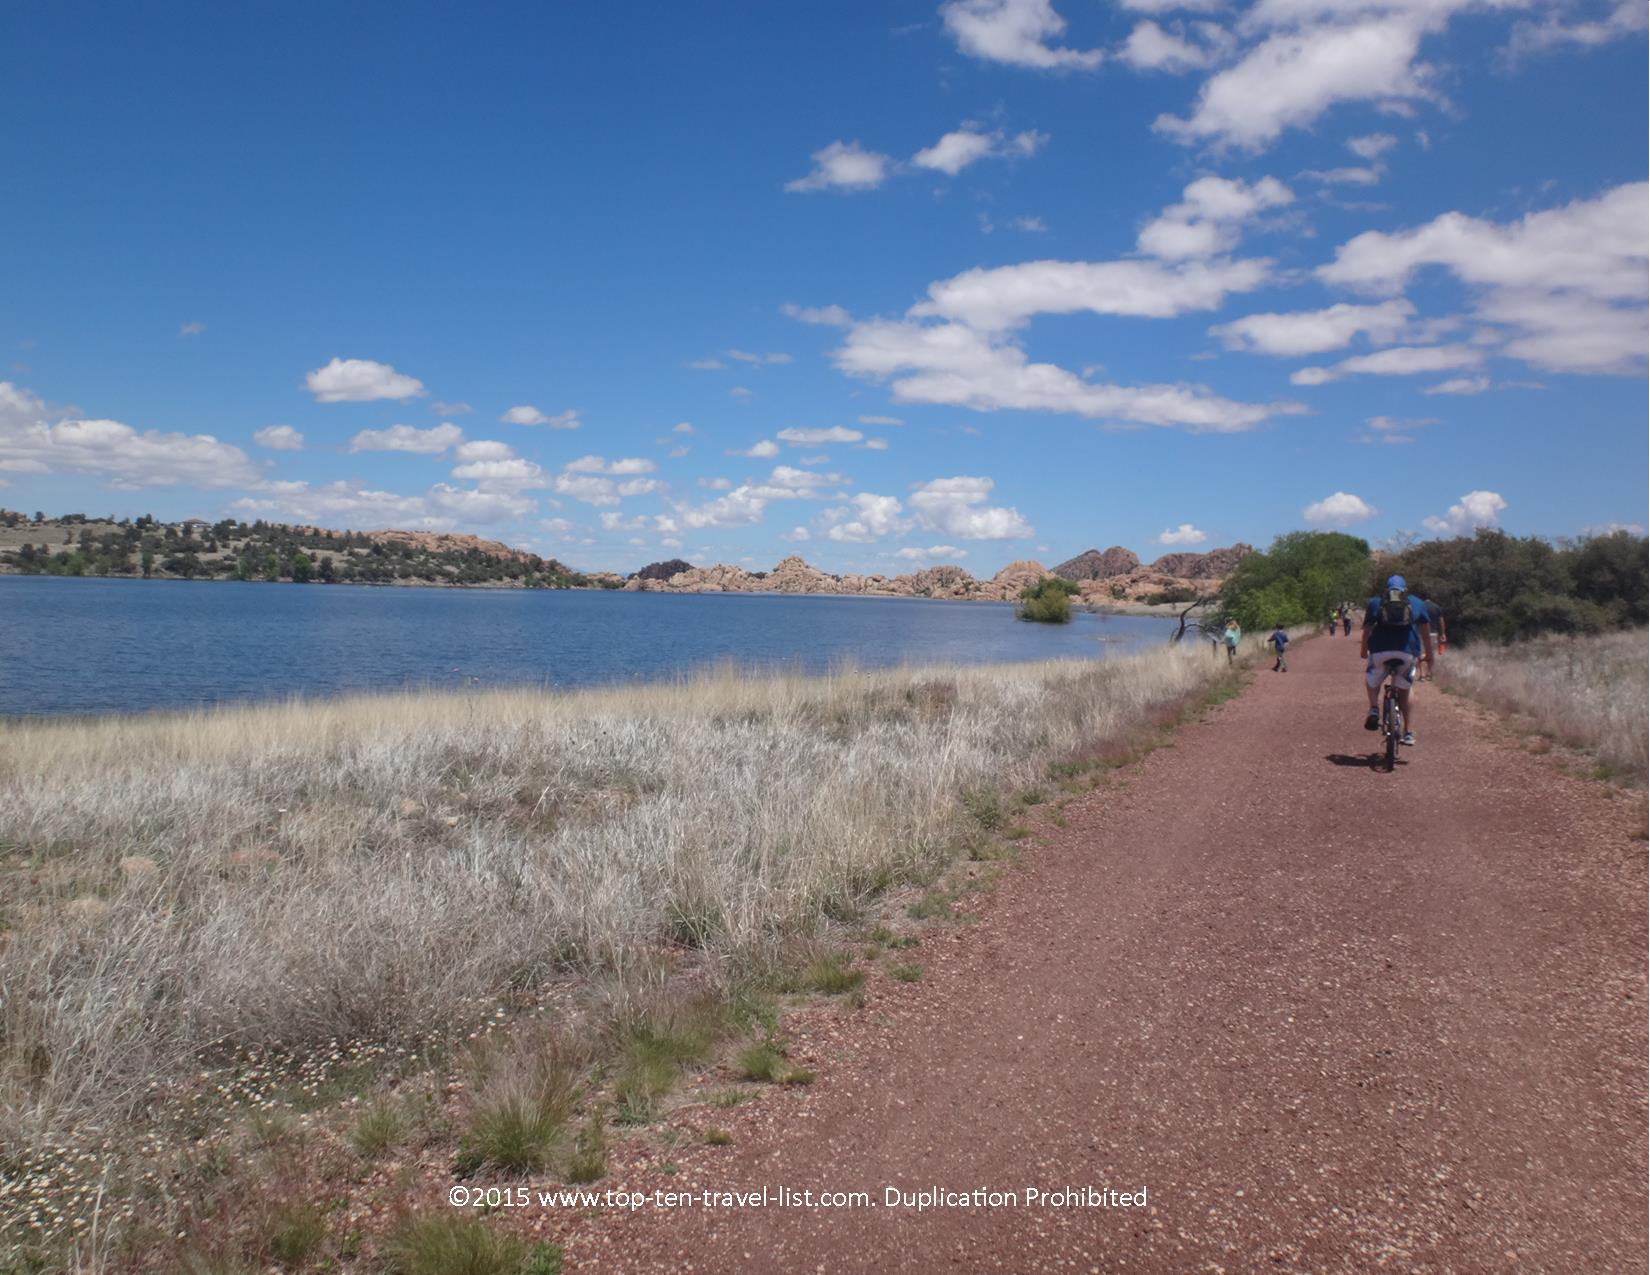 Scenic views of Watson Lake from the Peavine National Recreational Trail in Prescott, Arizona